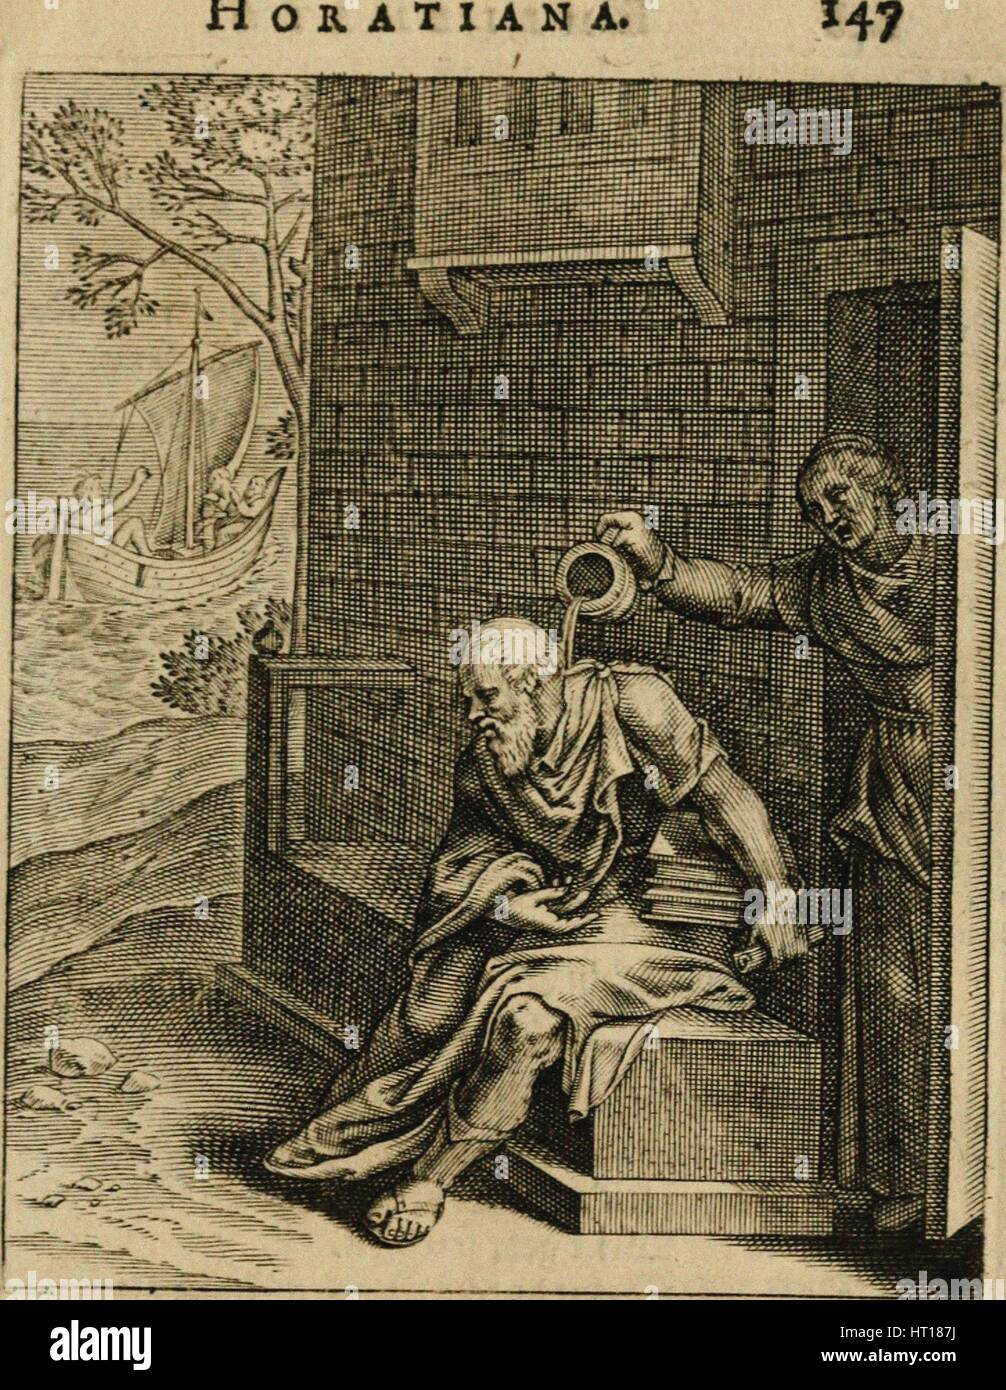 Xanthippe emptying a chamber pot over Socrates. (From Emblemata Horatiana), 1607. Artist: Veen, Otto van (1556-1629) - Stock Image